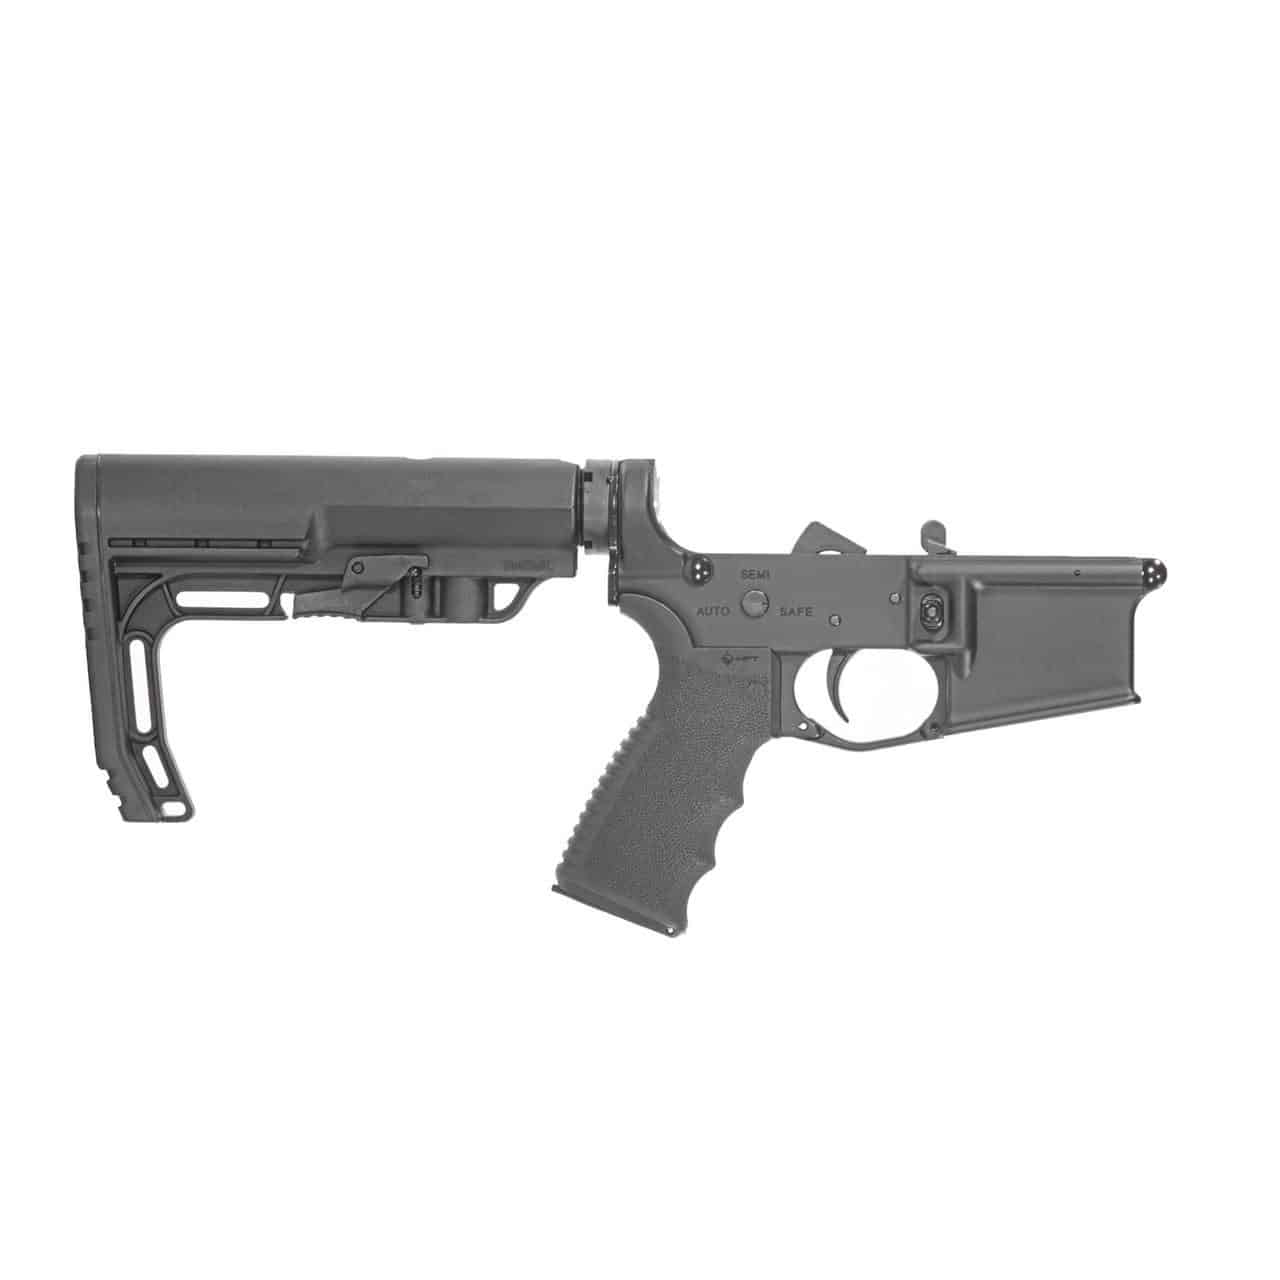 AR15 Complete Lower RECEIVER Minimalist ANDRO CORP